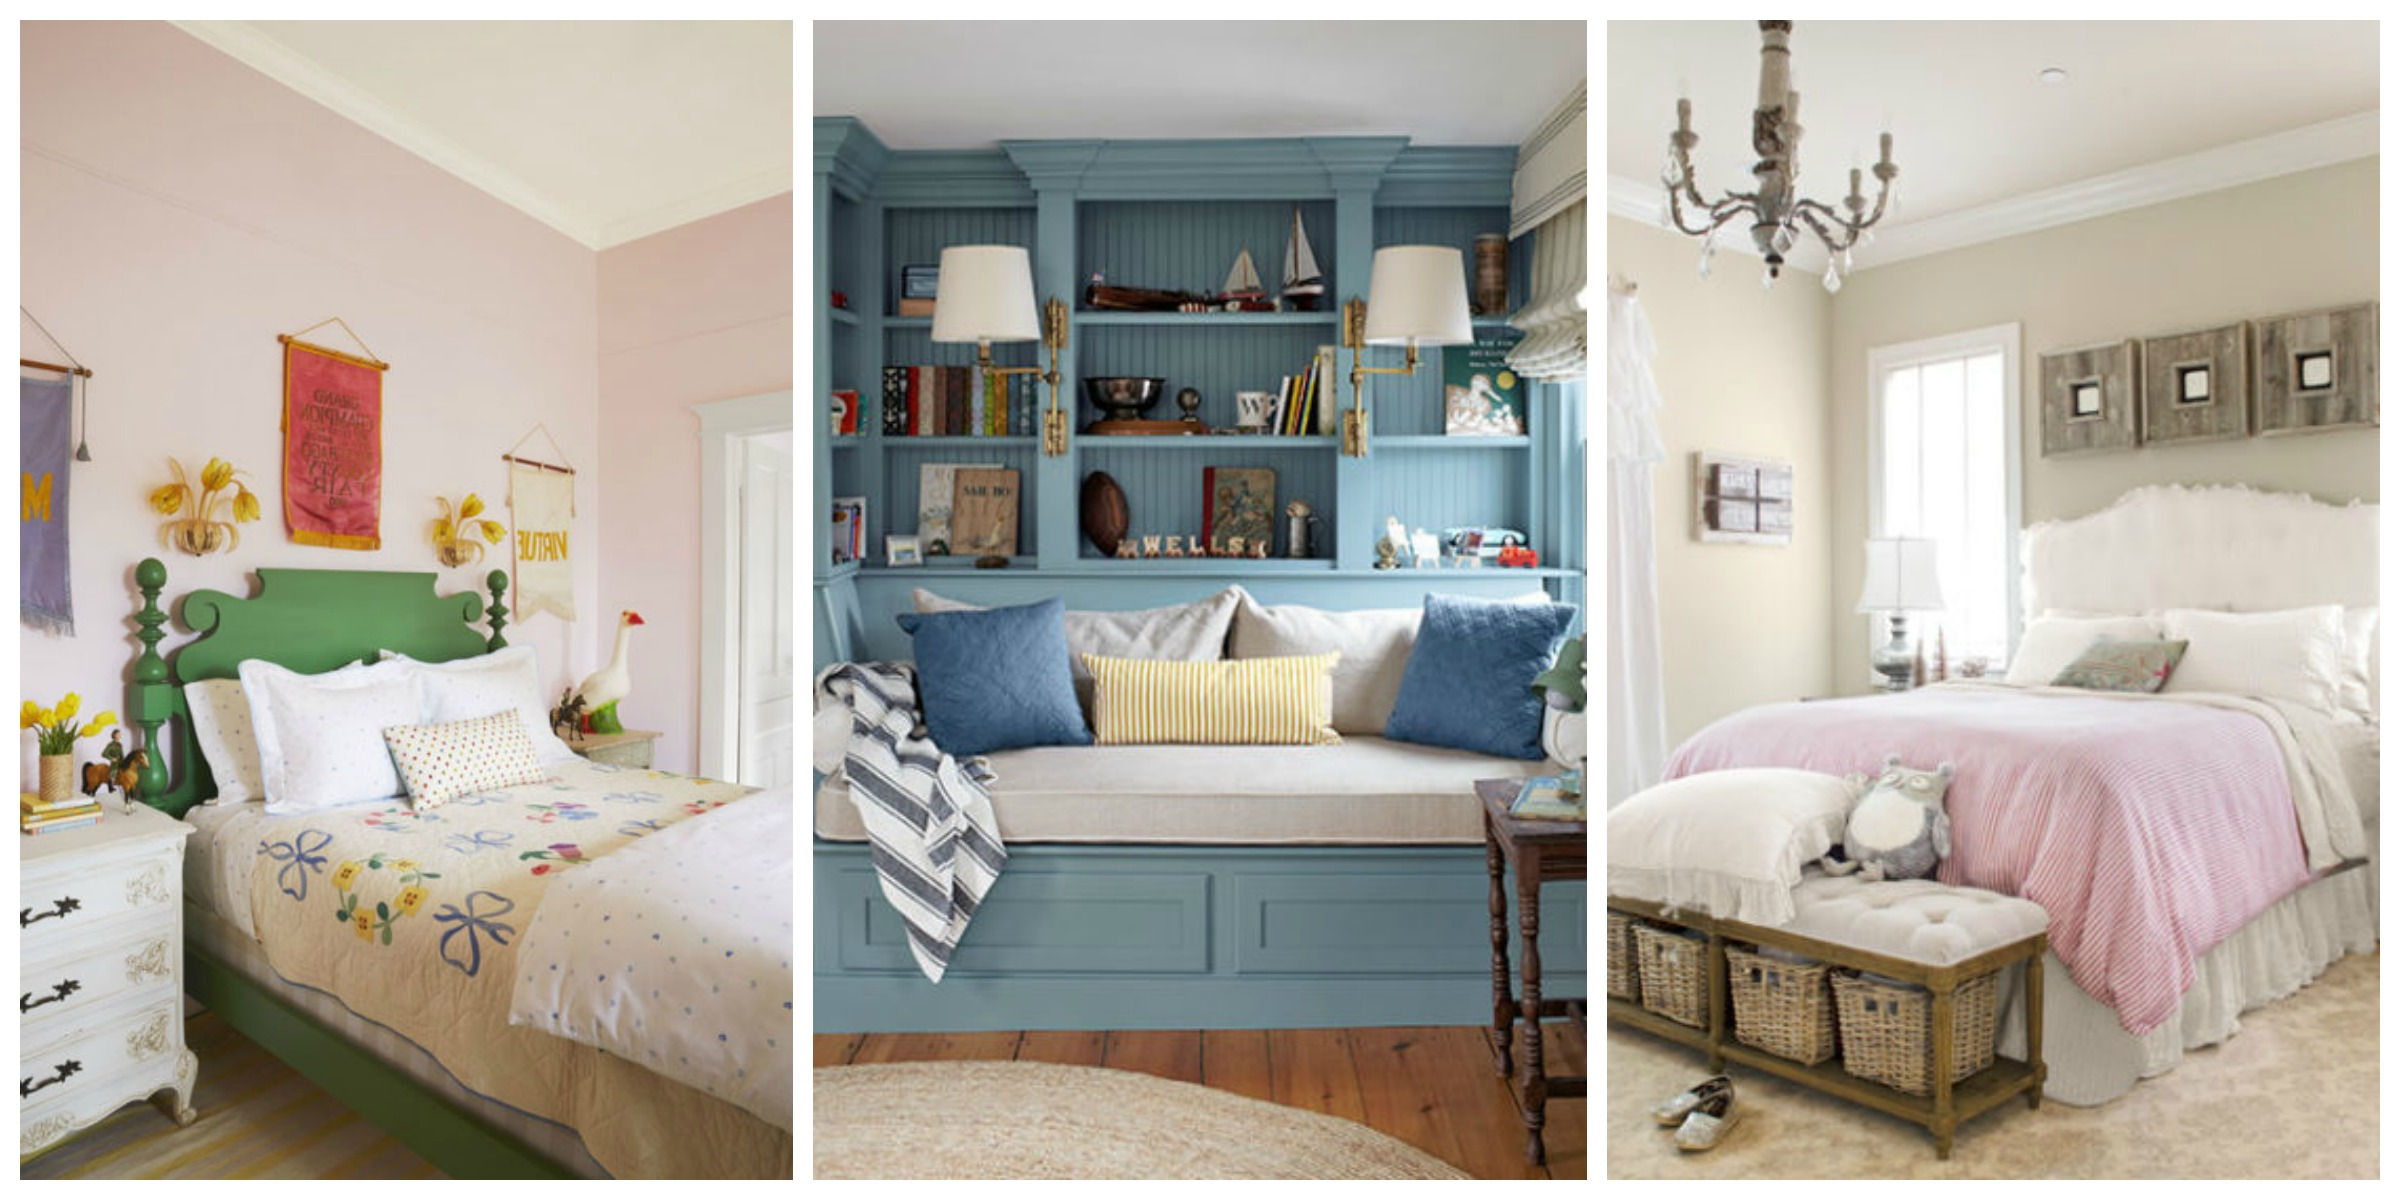 Bedroom Design And Decorating